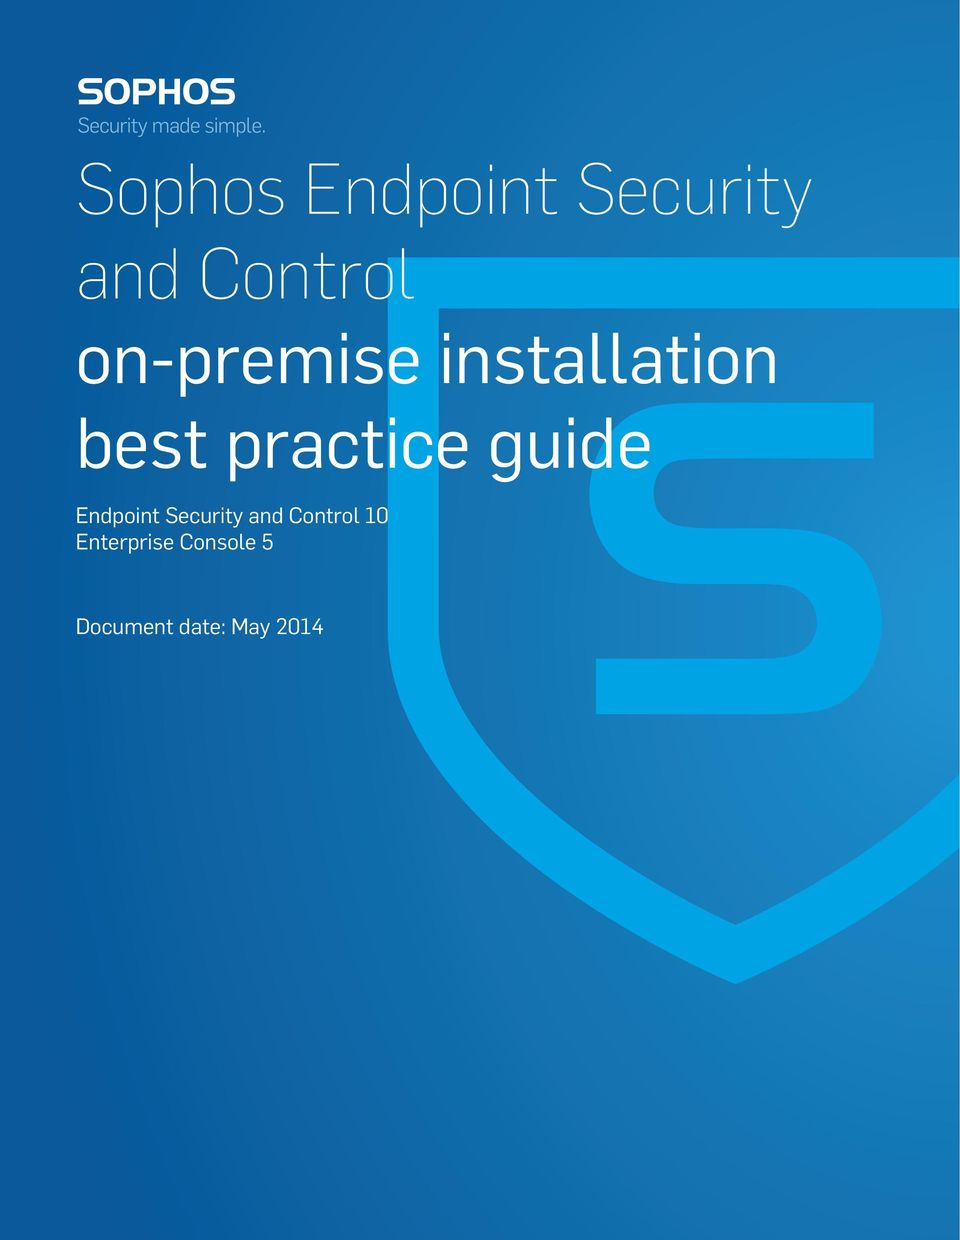 guide Endpoint Security and Control 10